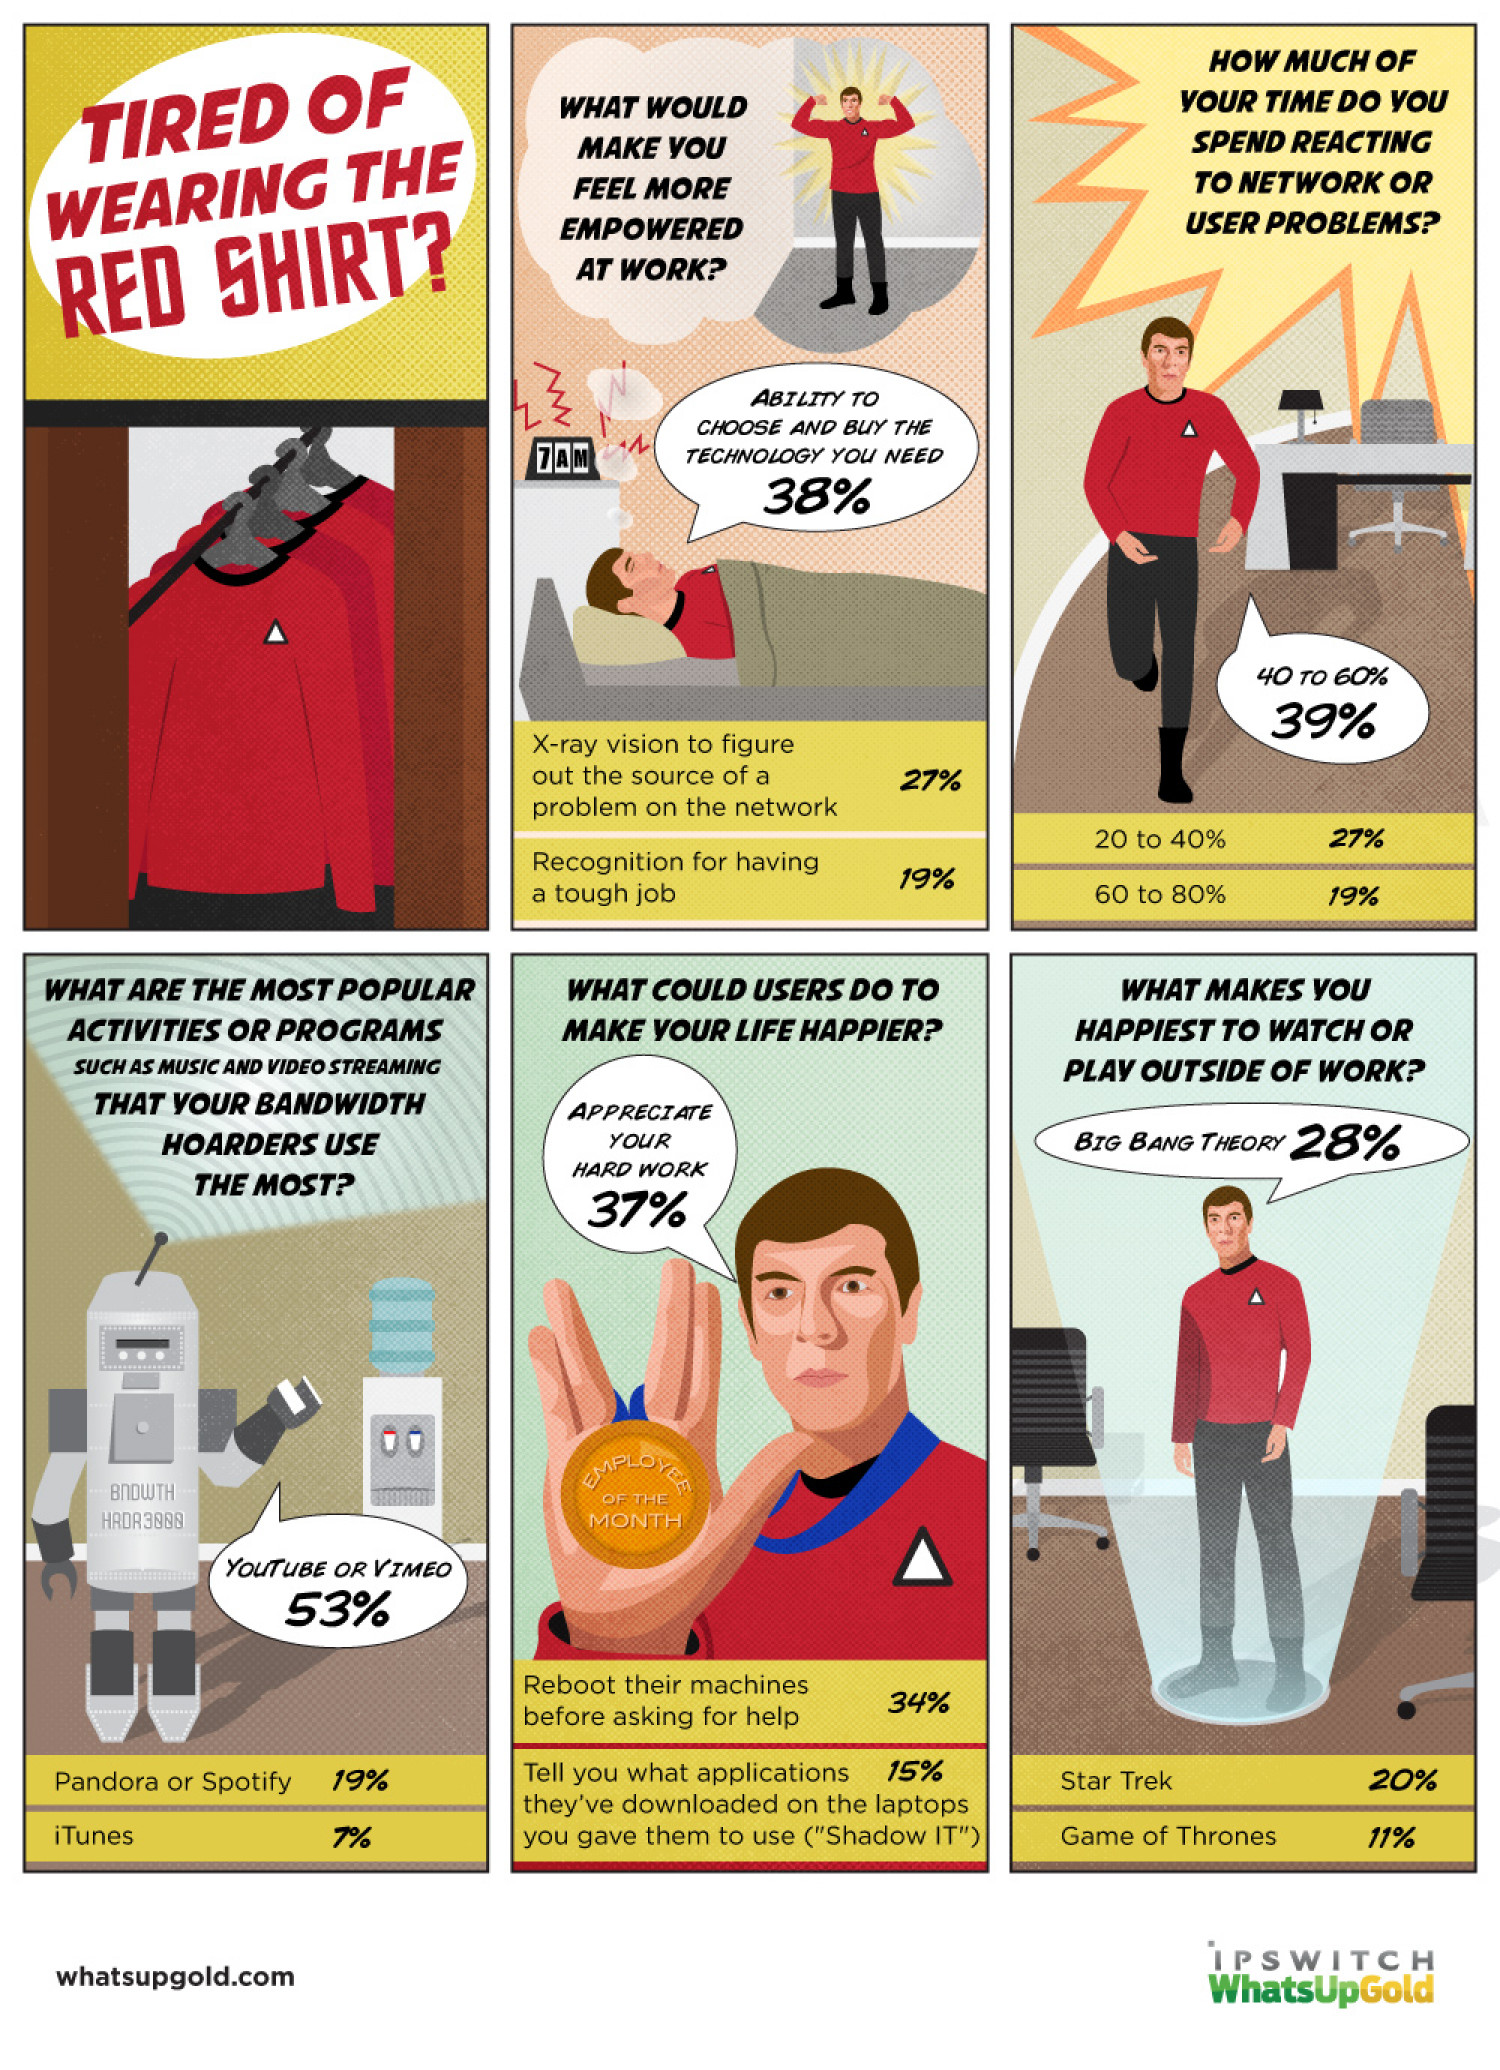 IT Admins are Tired of Wearing the Red Shirt Infographic